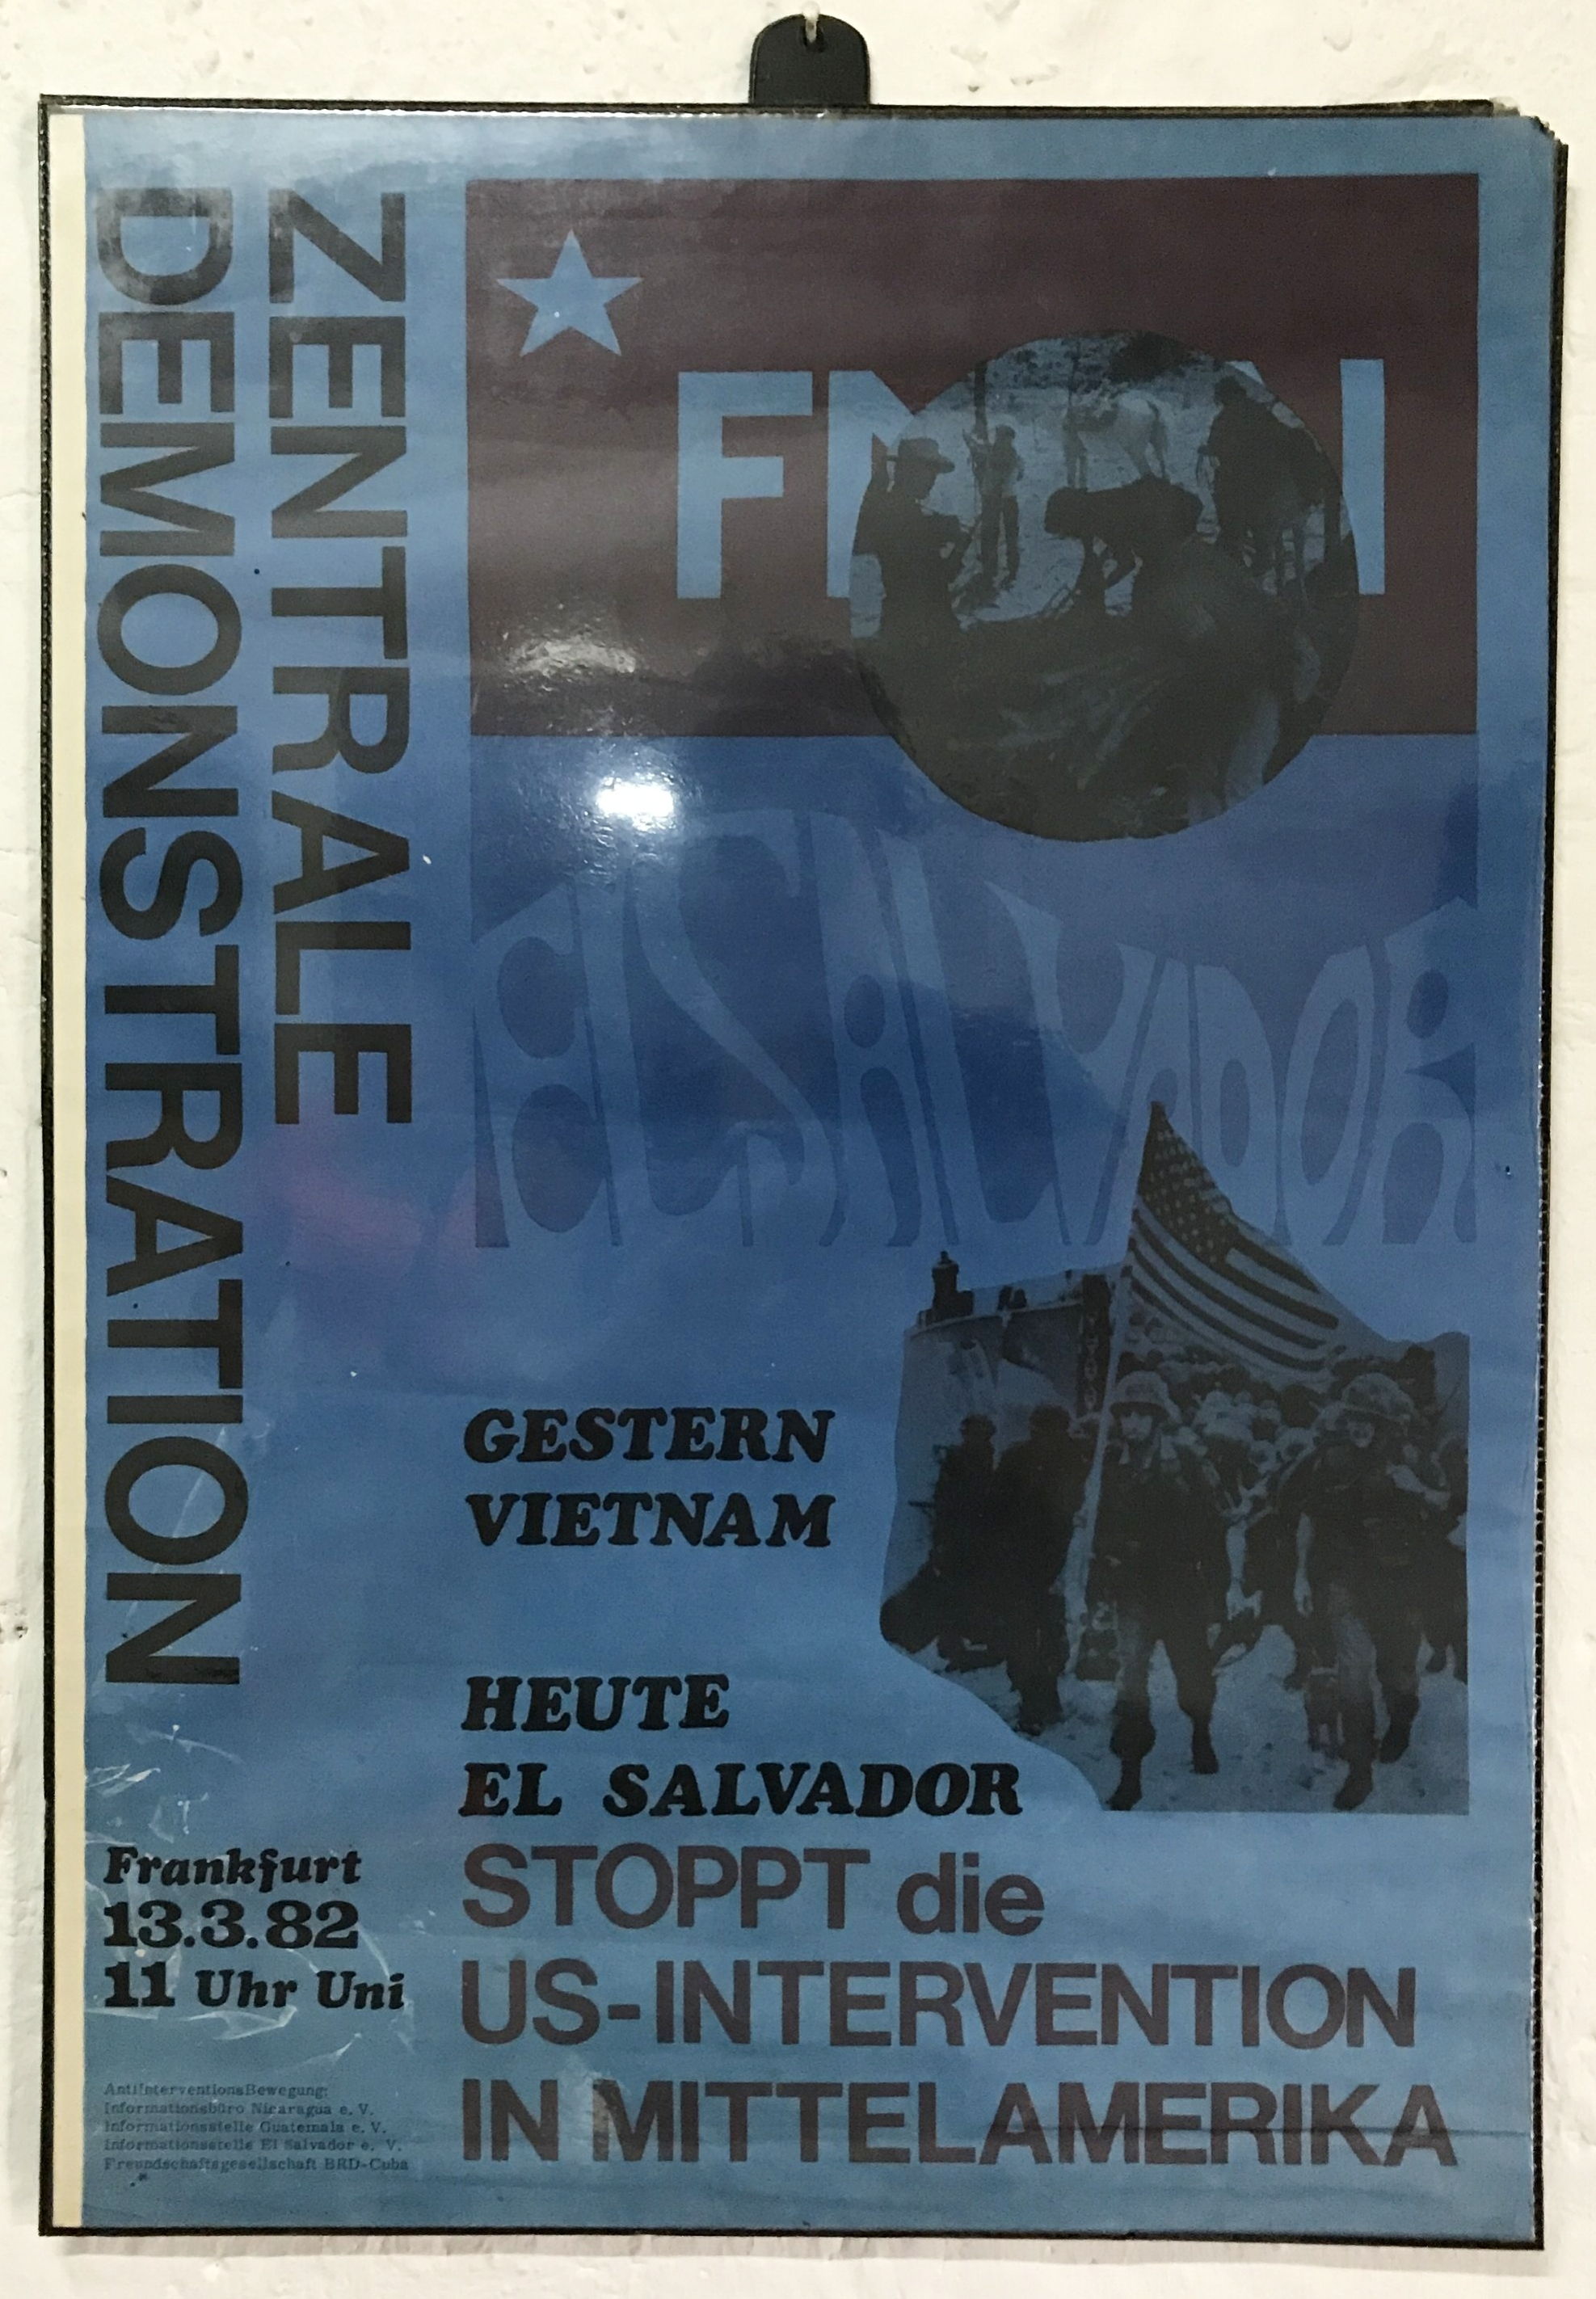 German protest poster comparing USA intervention in El Salvador to the Vietnam war.